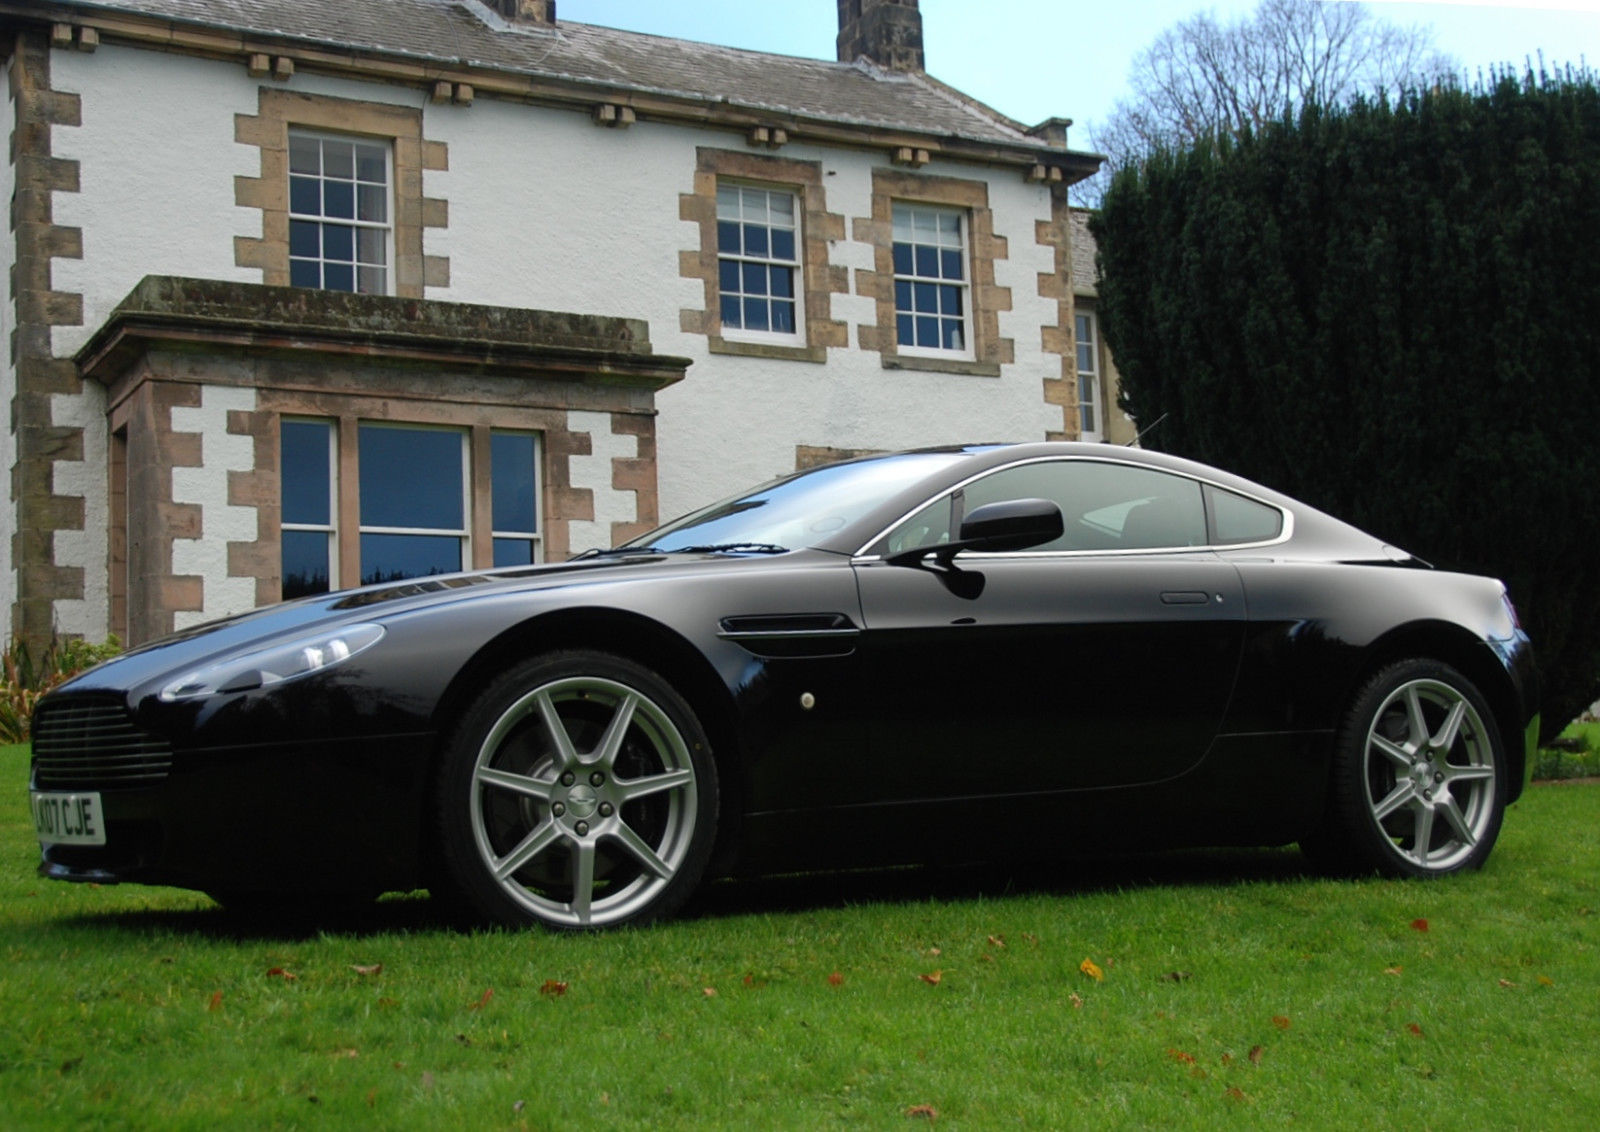 Aston Martin V8 Vantage 2007 Mike Hope Of Wooler